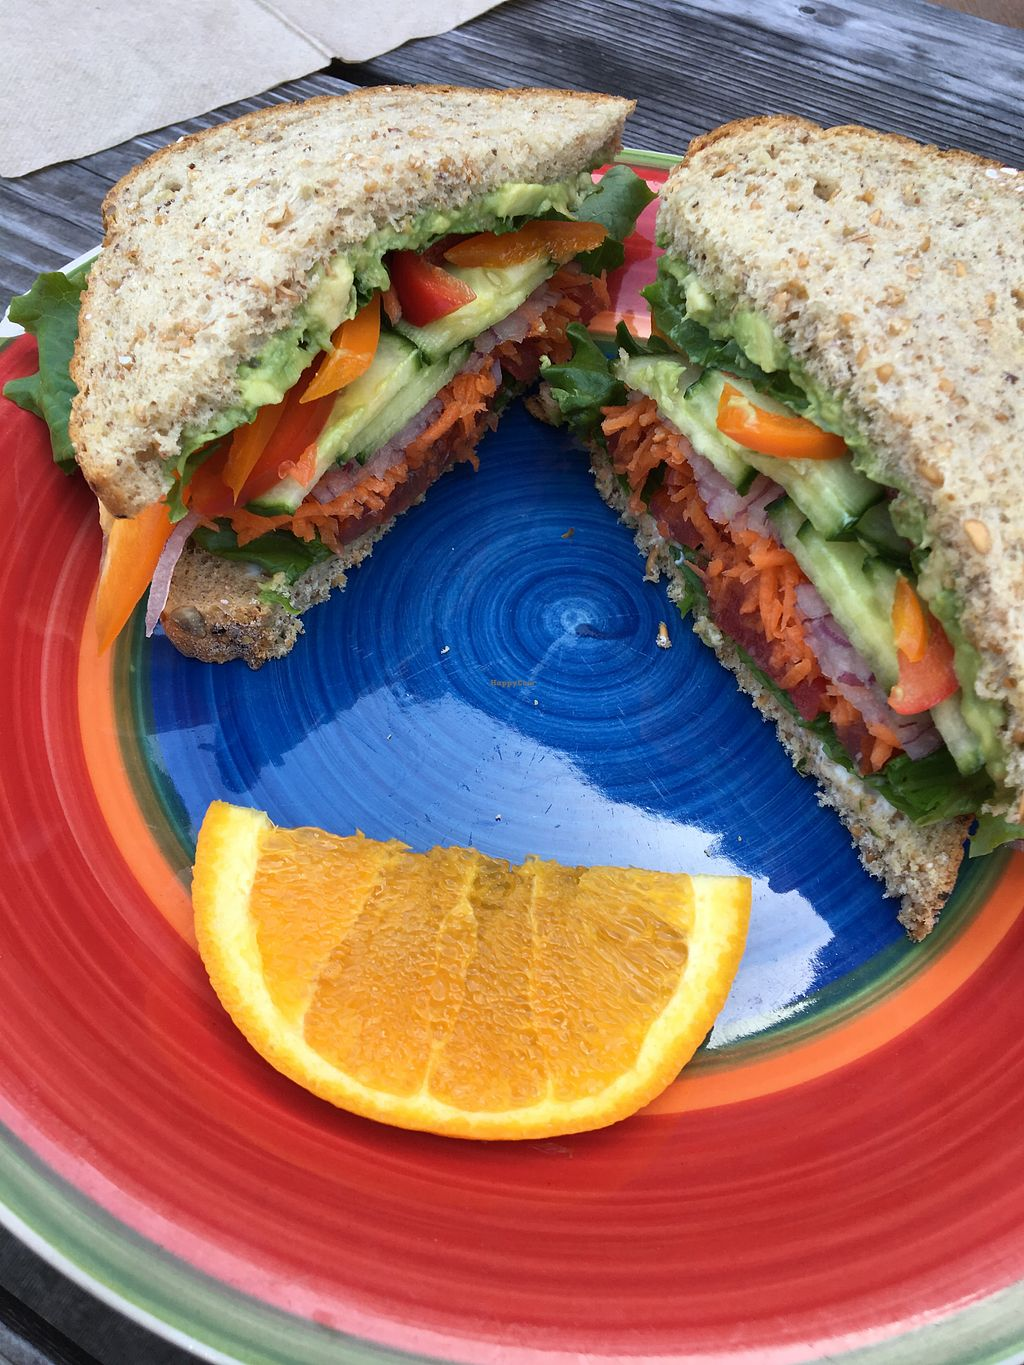 """Photo of Farm Stand Deli  by <a href=""""/members/profile/Clean%26Green"""">Clean&Green</a> <br/>Veg sandwich <br/> May 23, 2018  - <a href='/contact/abuse/image/39067/404015'>Report</a>"""